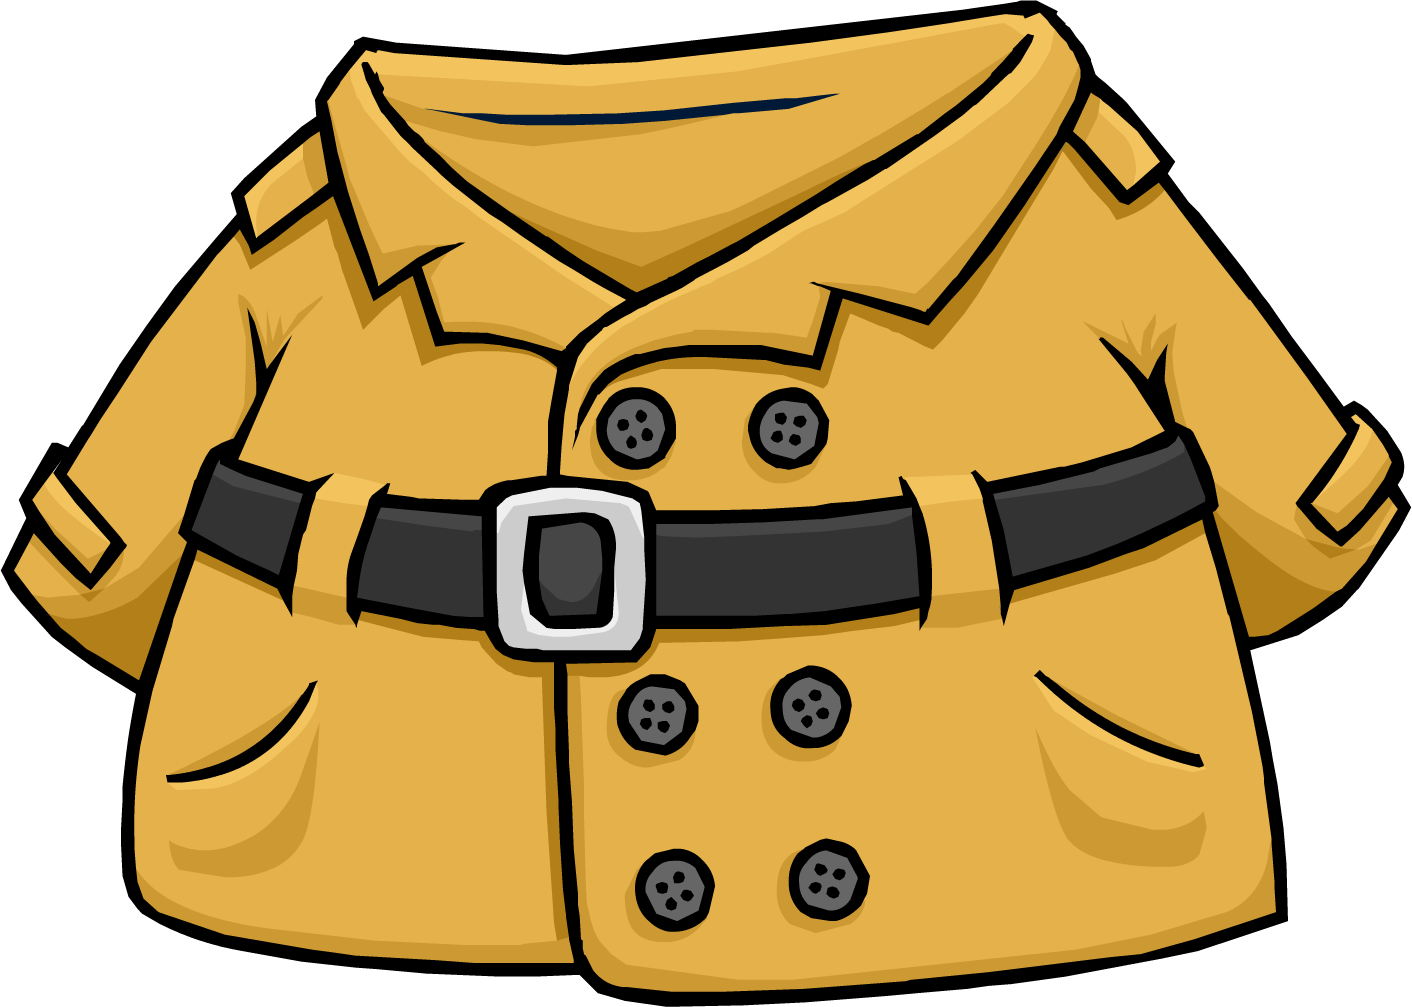 Briefcase clipart detective. Images free download best